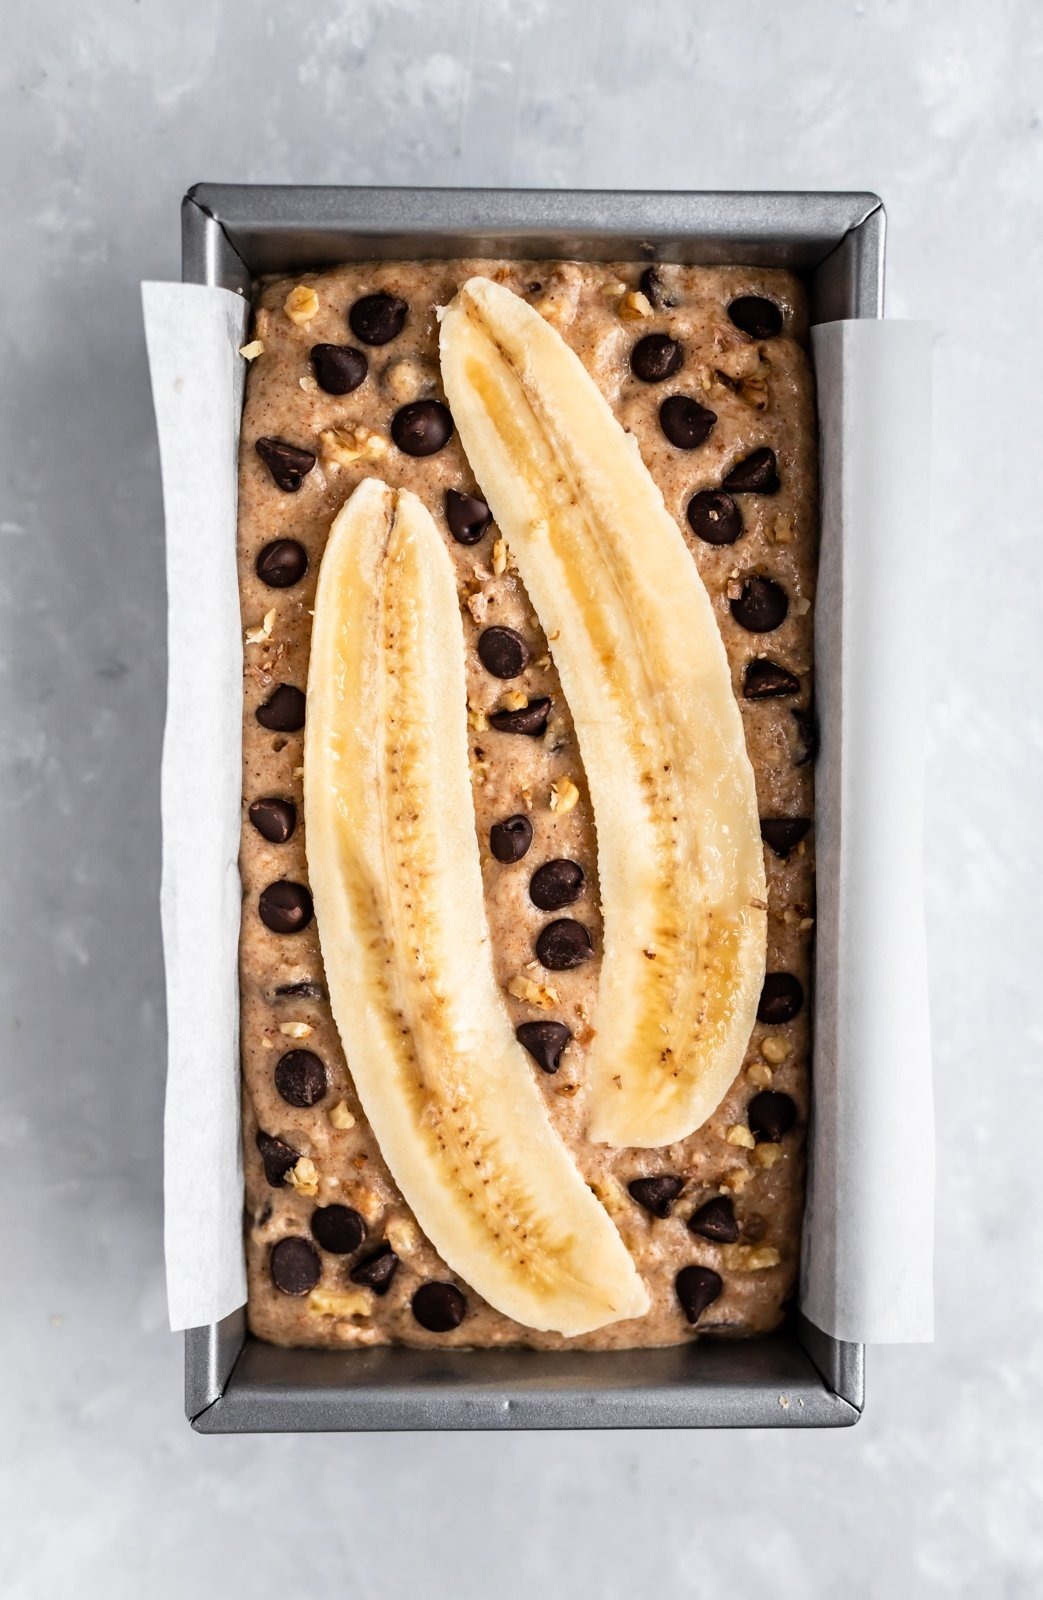 banana bread in a pan before baking with two banana slices on top